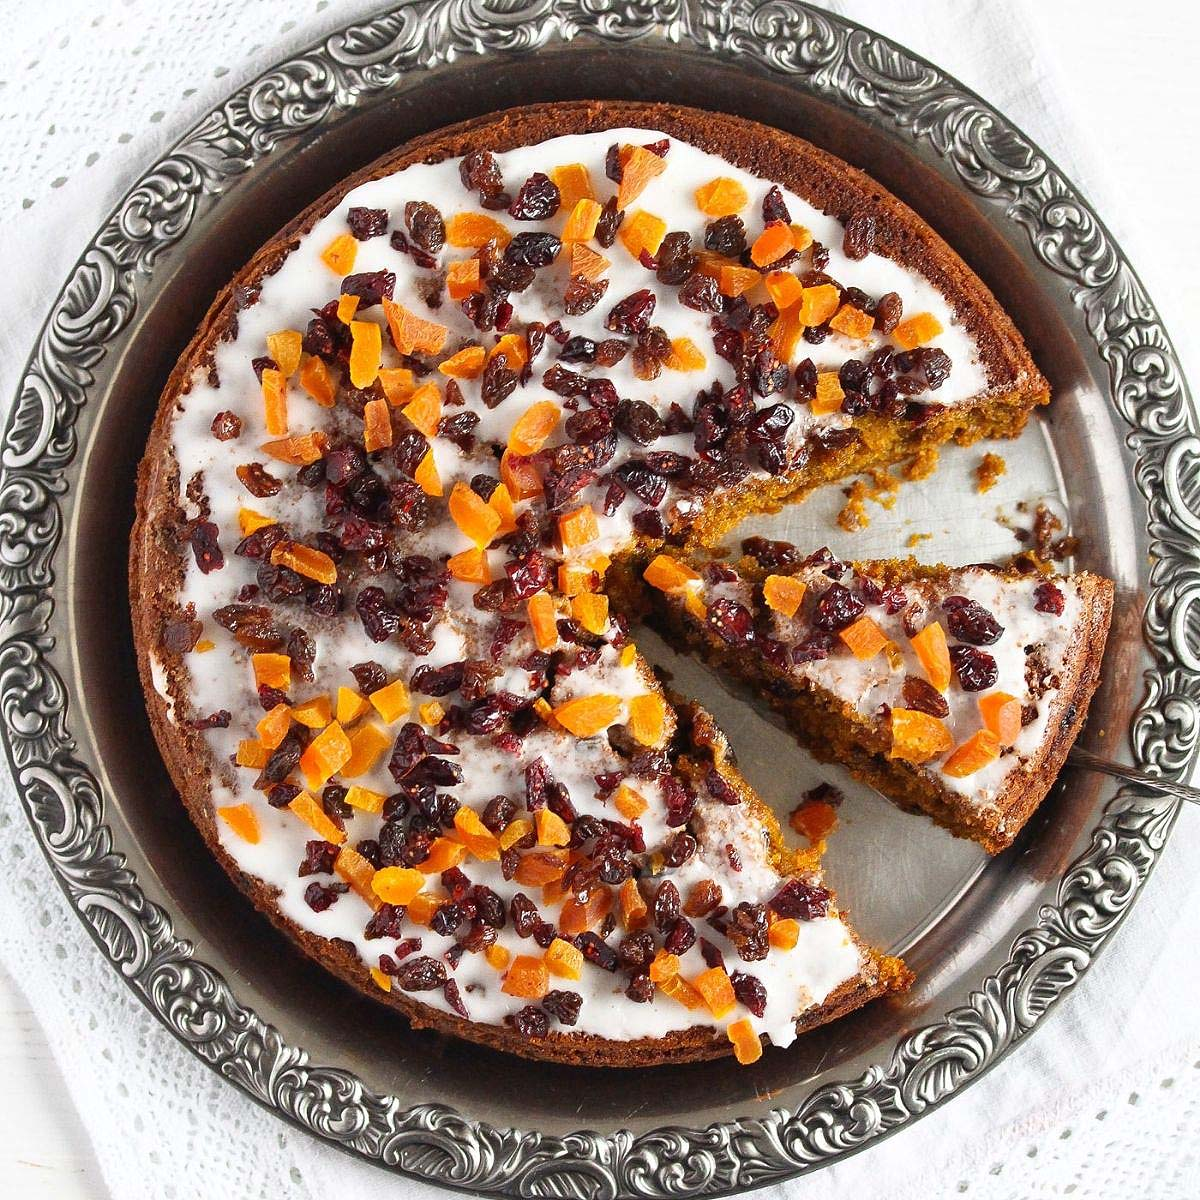 pumpkin fruitcake glazed and topped with dried fruit